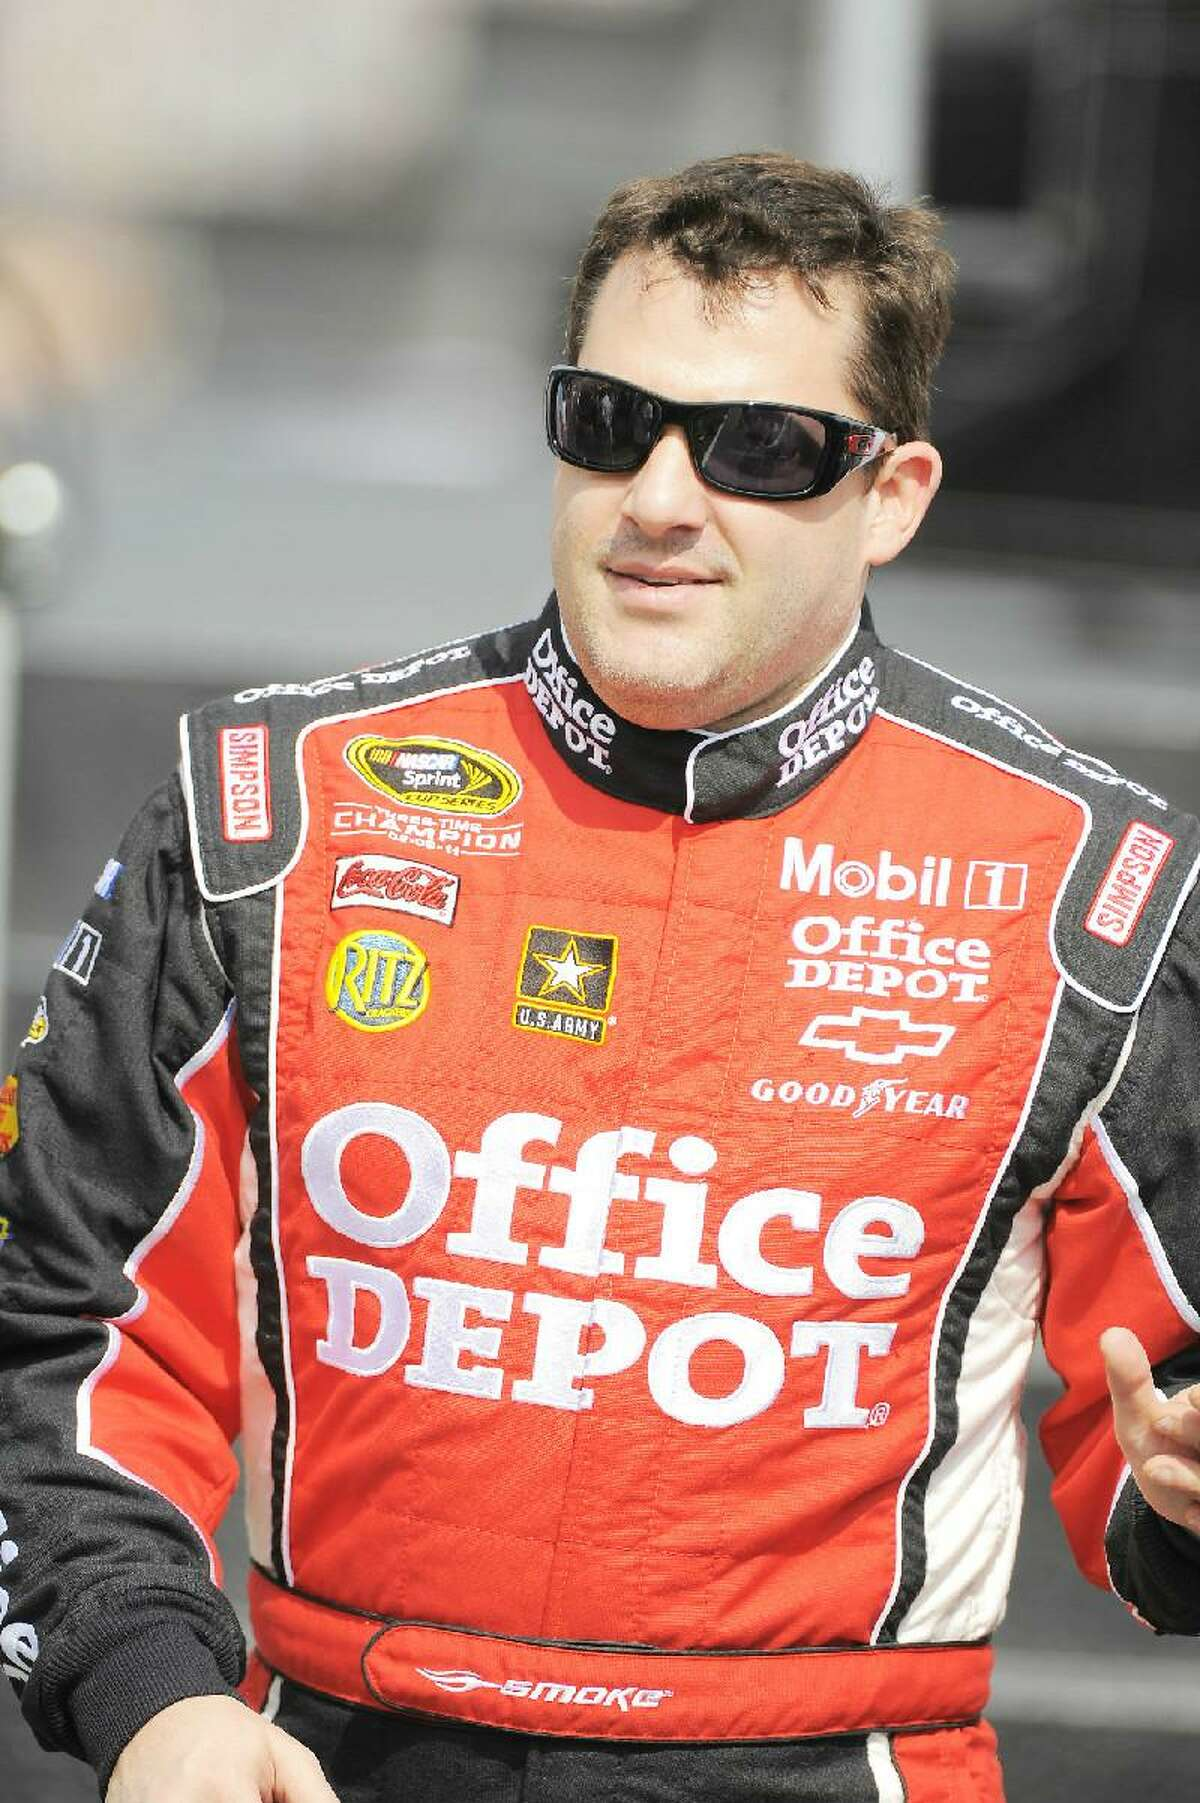 ASSOCIATED PRESS Sprint Cup Series driver Tony Stewart (14) is shown prior to the Gatorade Duels at Daytona International Speedway on Feb 23 in Daytona Beach, Fla. Stewart is looking for his first Daytona 500 victory. He is 0-13 all-time.